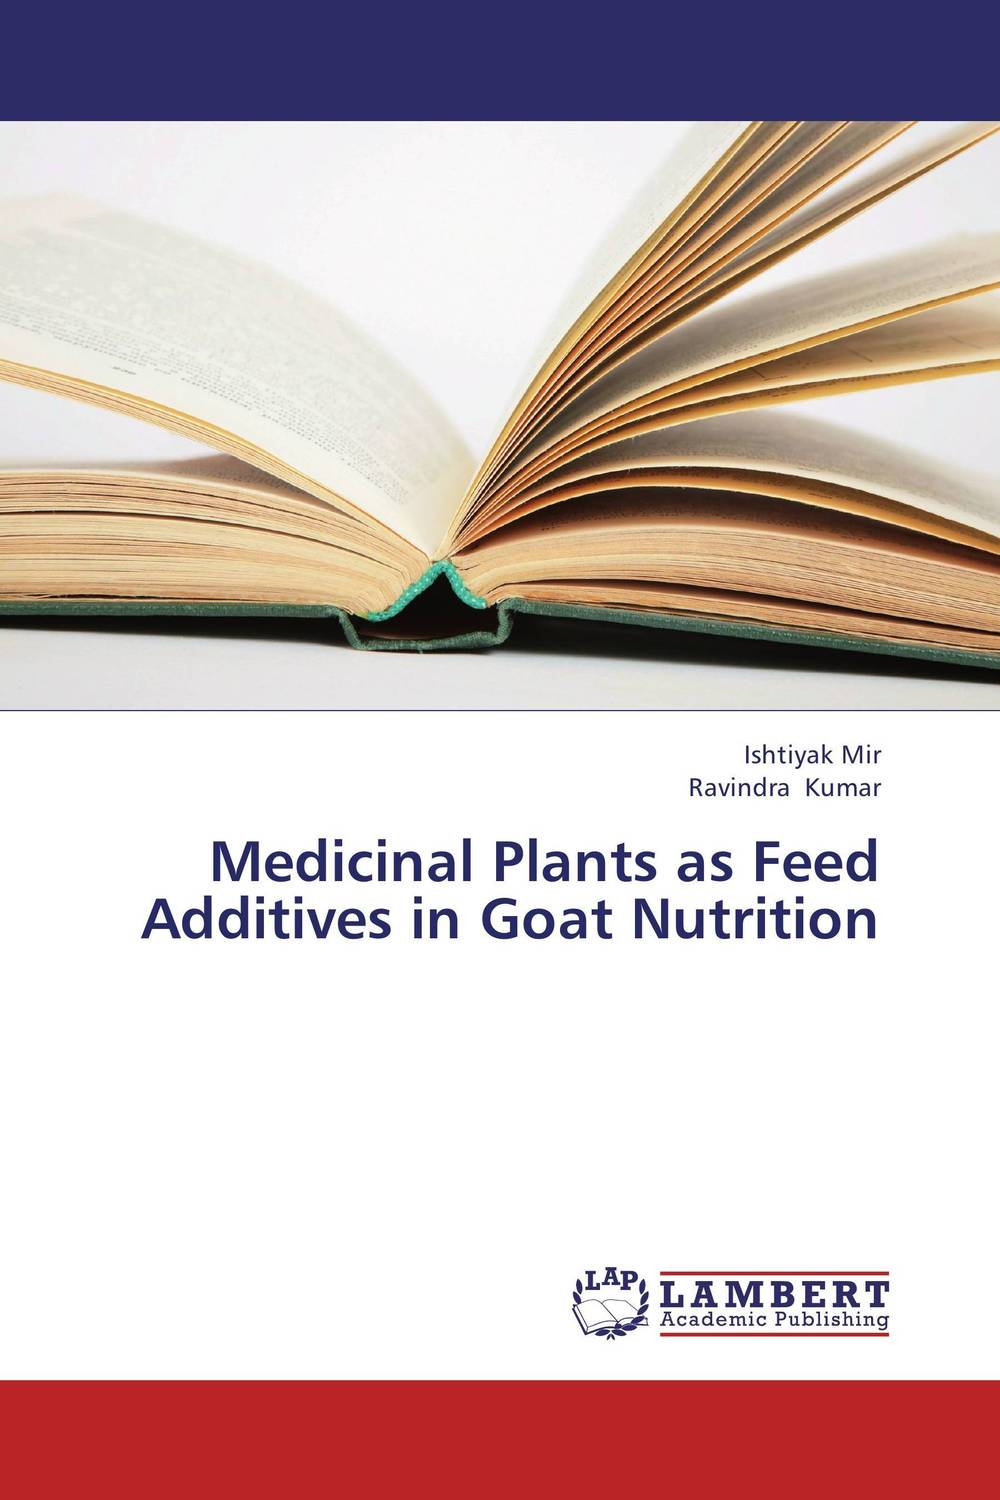 Medicinal Plants as Feed Additives in Goat Nutrition george varghese diana john and solomon habtemariam medicinal plants for kidney stone a monograph